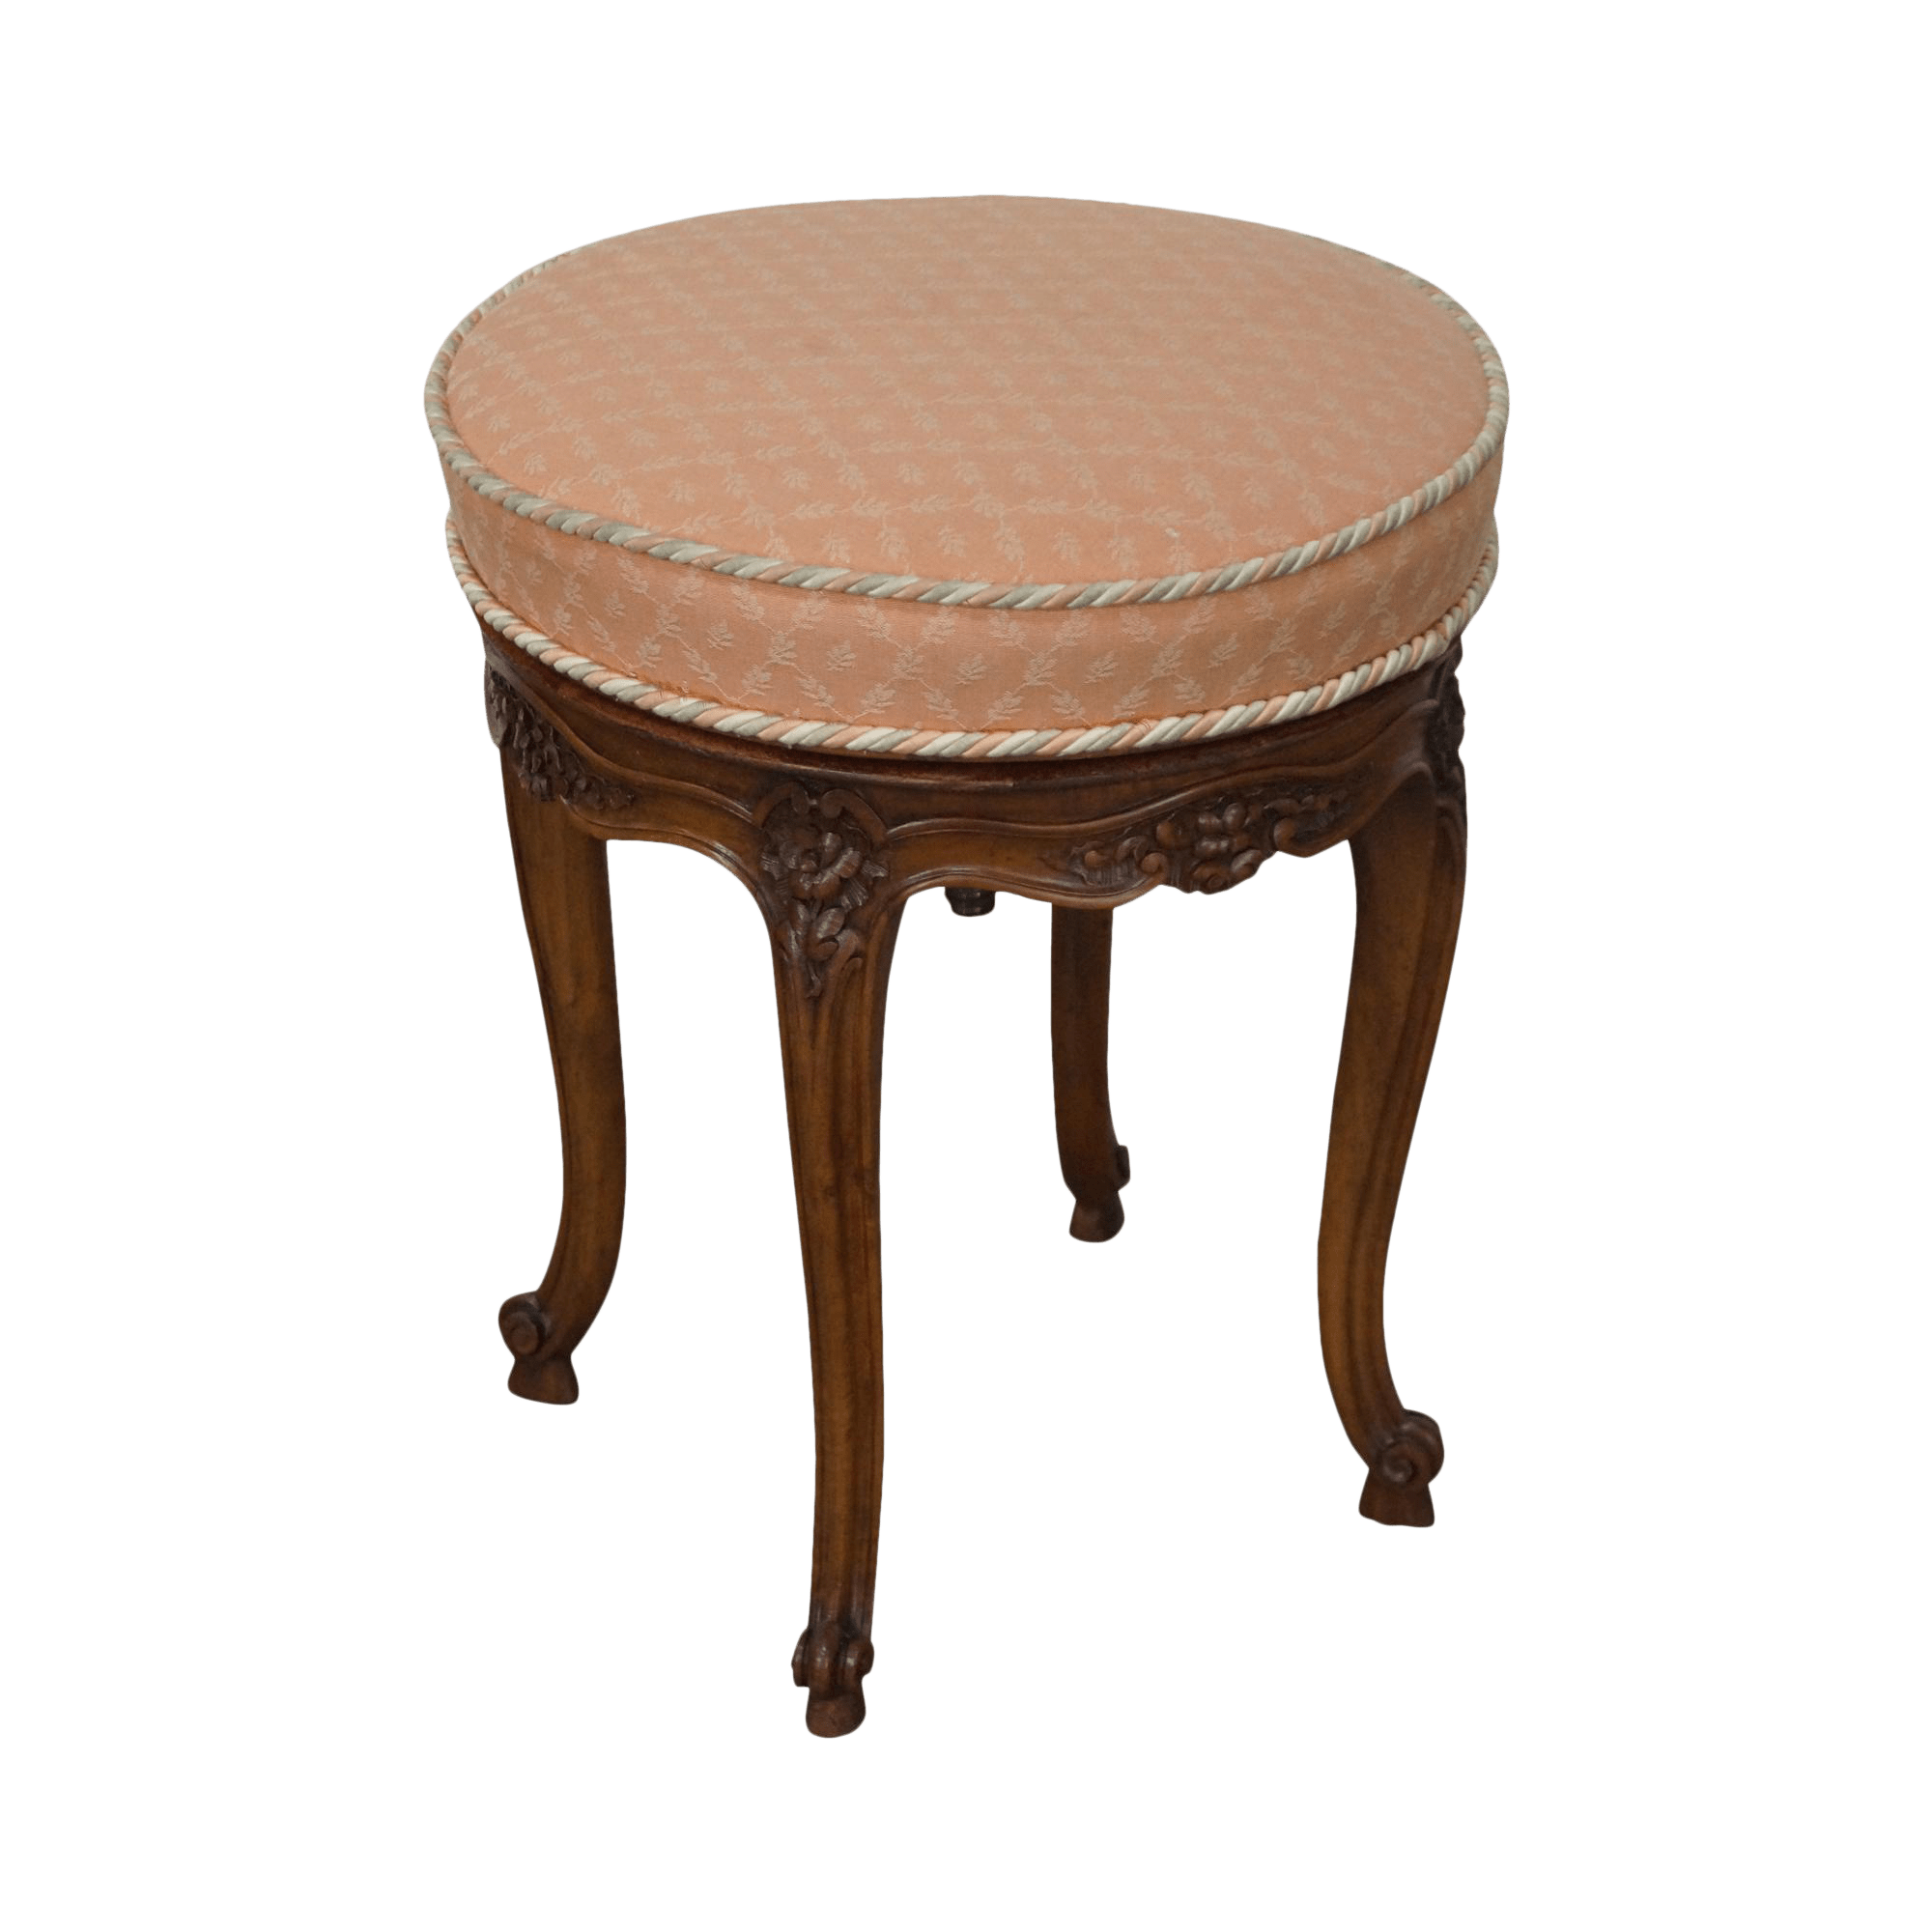 revolving chair bar stool mexican dining table and chairs french louis xv walnut round chairish